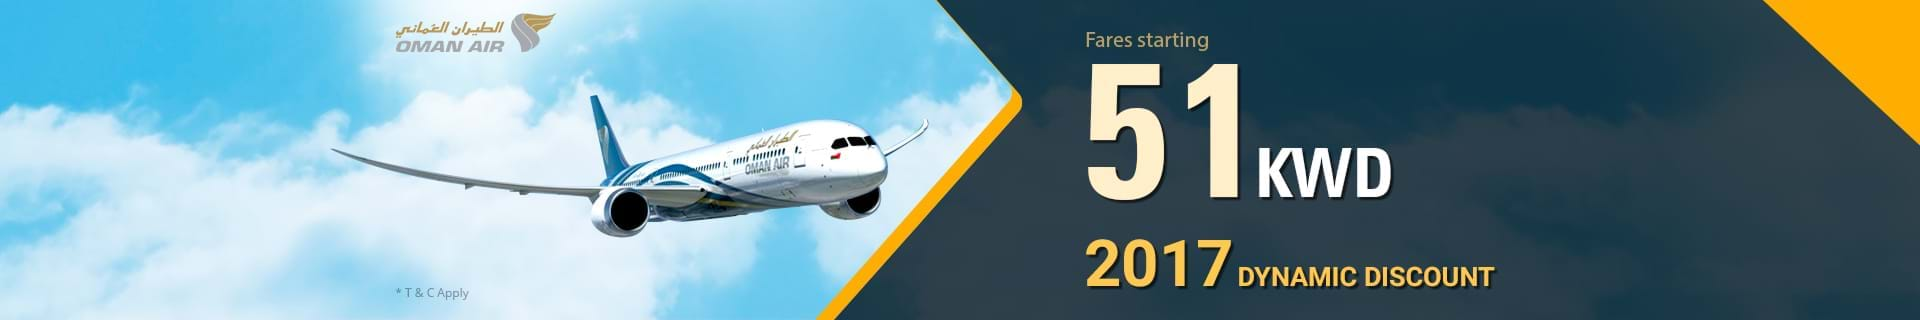 Book Before 31st Mar 2017 & Get Lowest Airfares to Mumbai,Jakarata, & Others